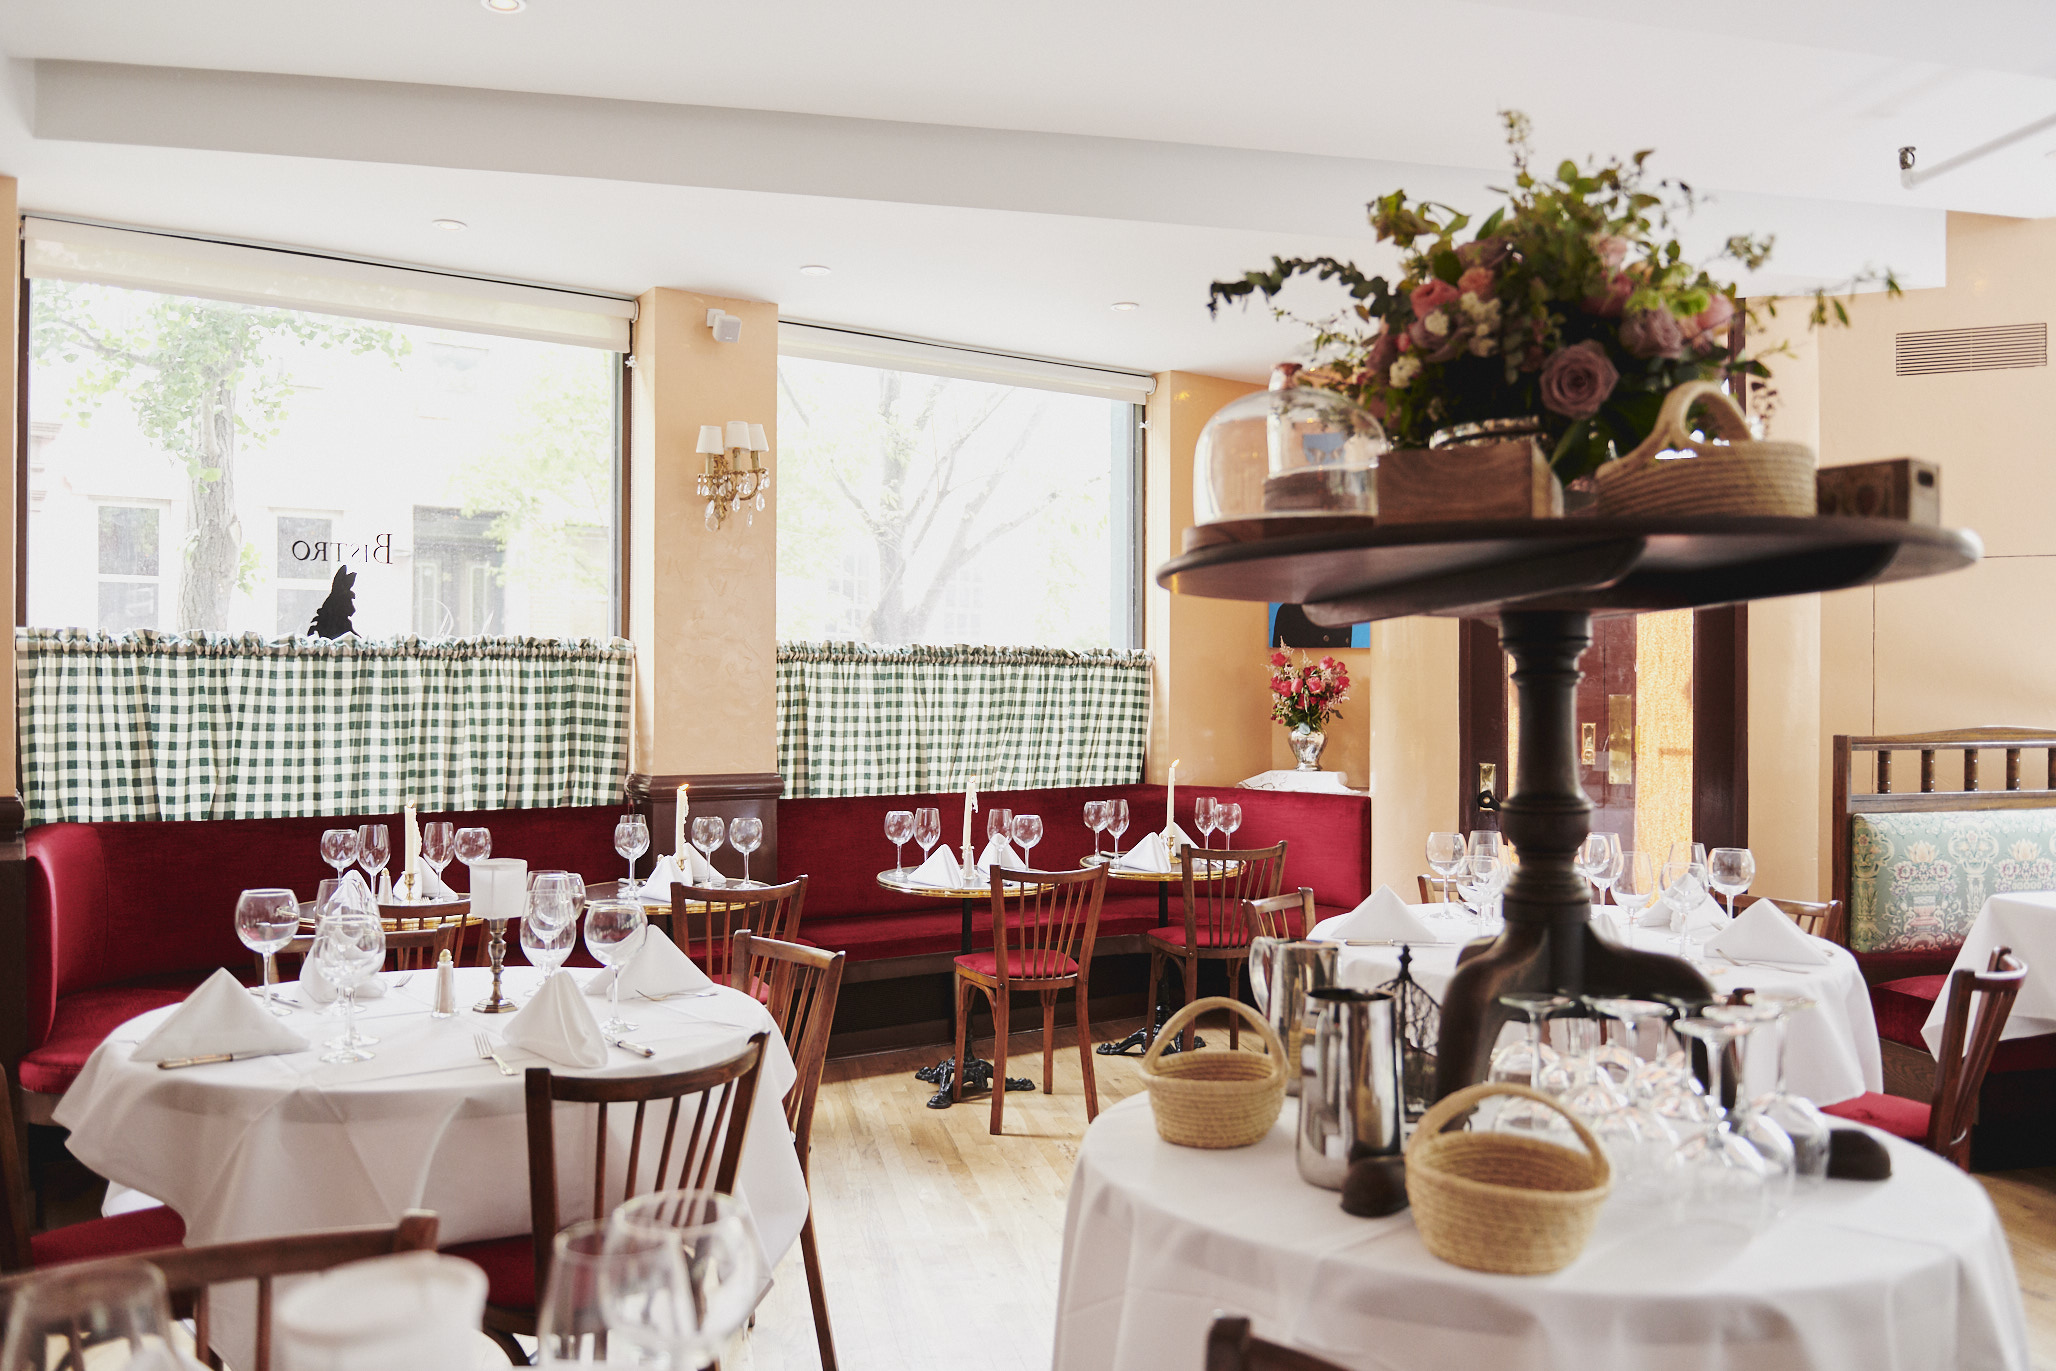 Bistro Pierre Lapin's dining room with white tablecloths and checkered windows